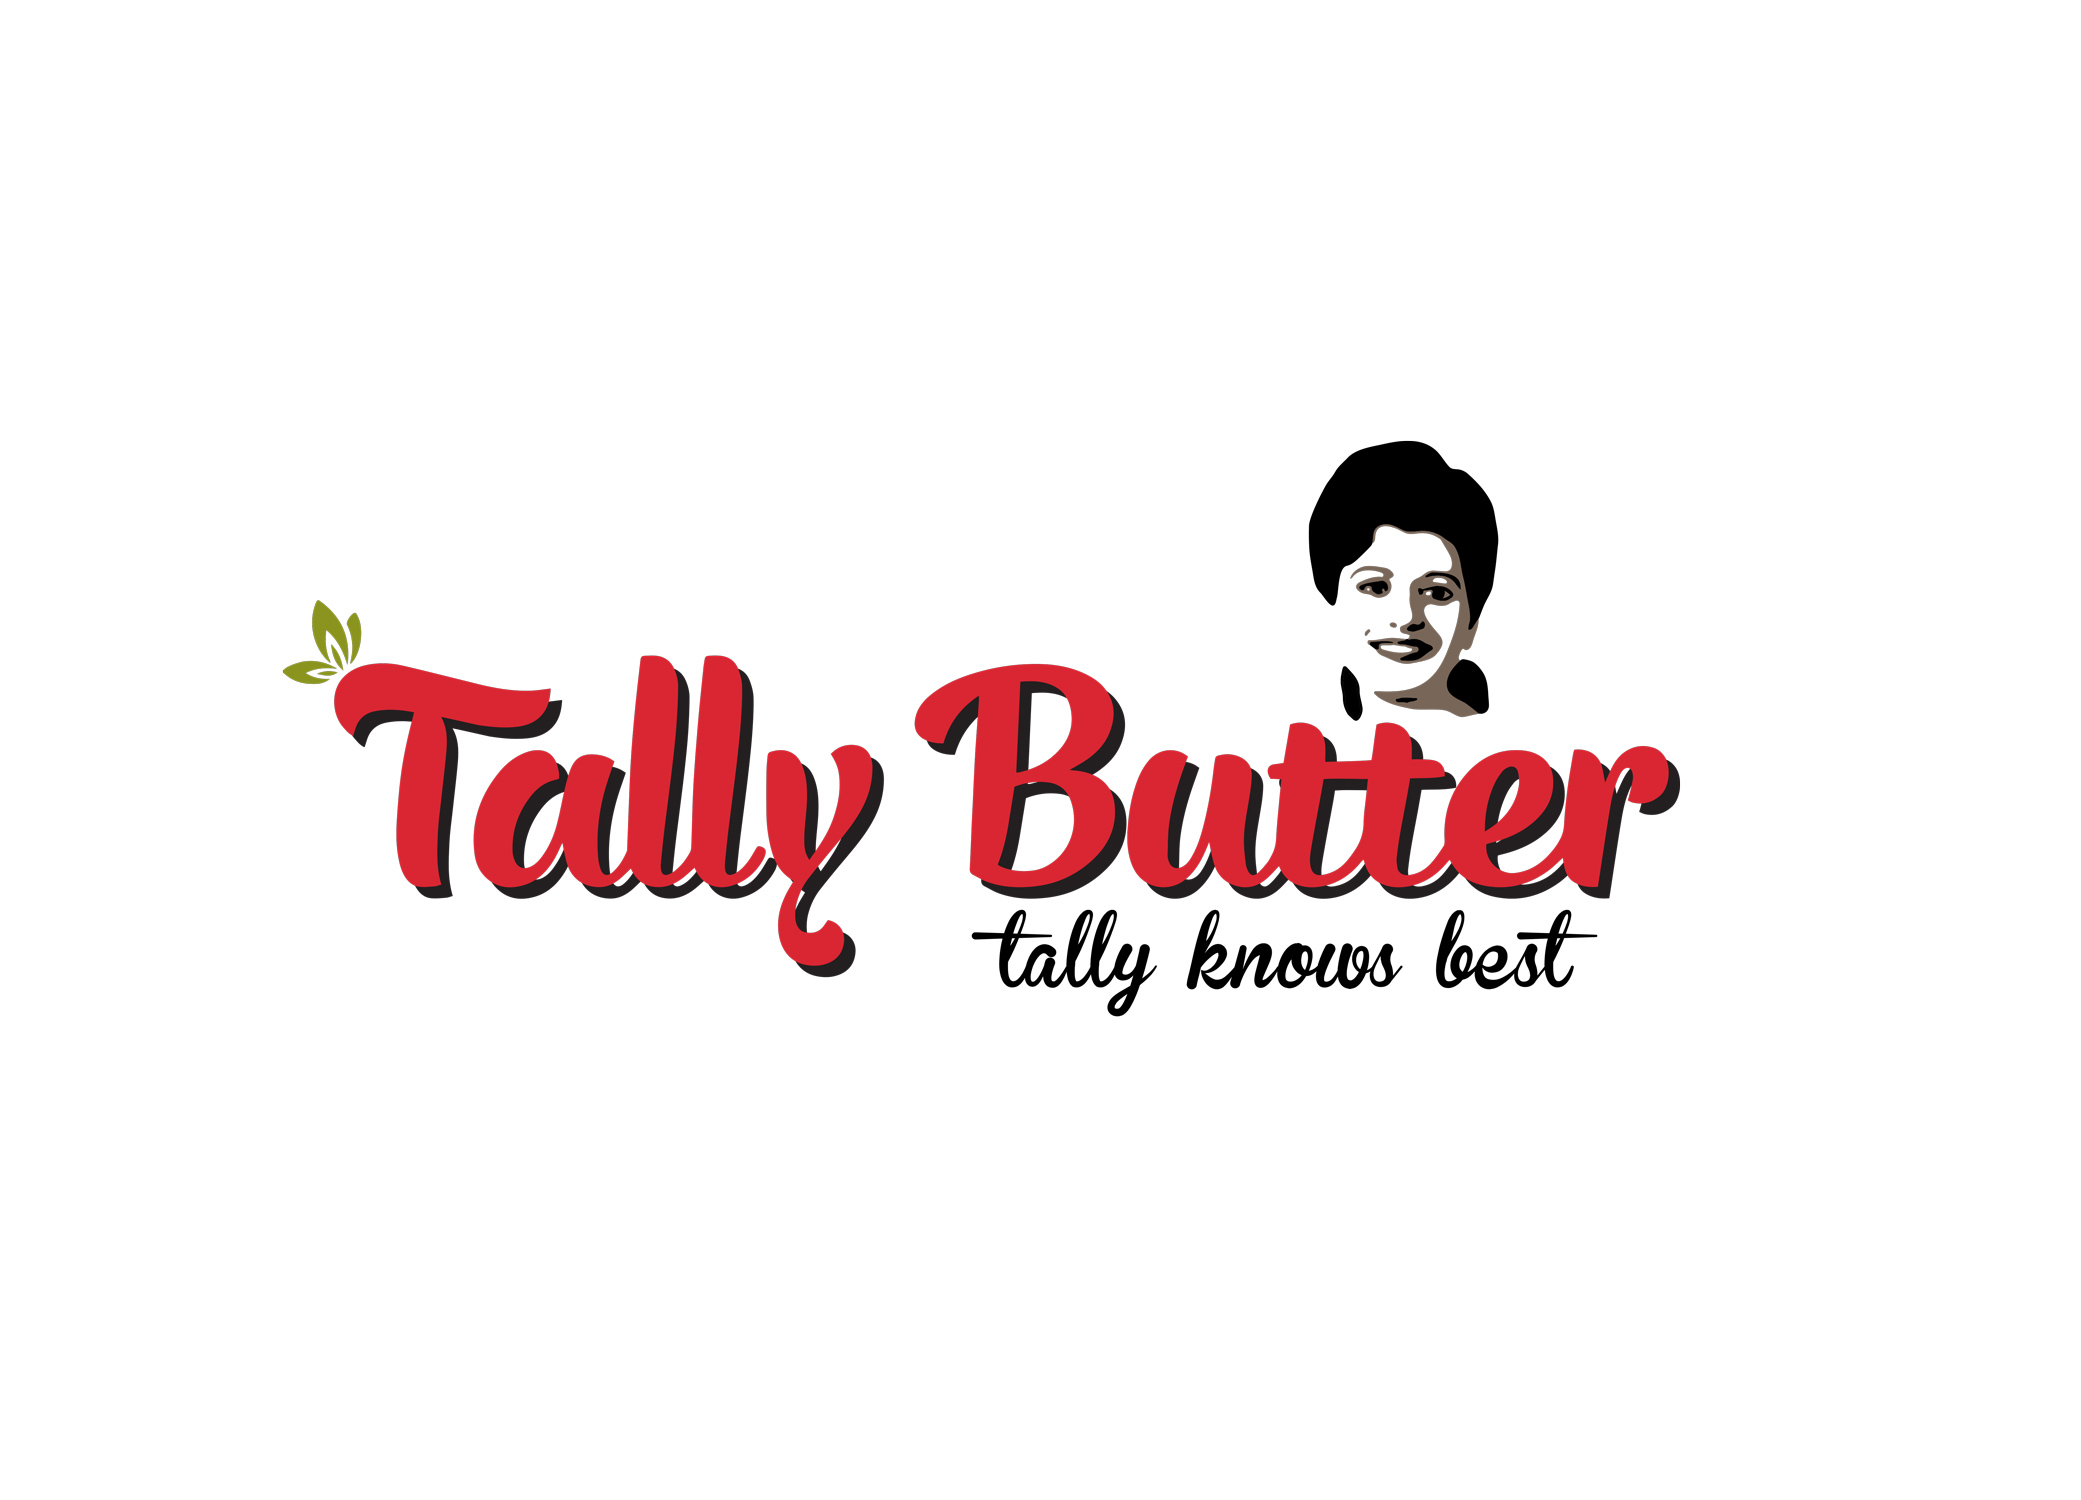 Tally Butter retro logo design with stylized image of Tally herself above the decorative red font.